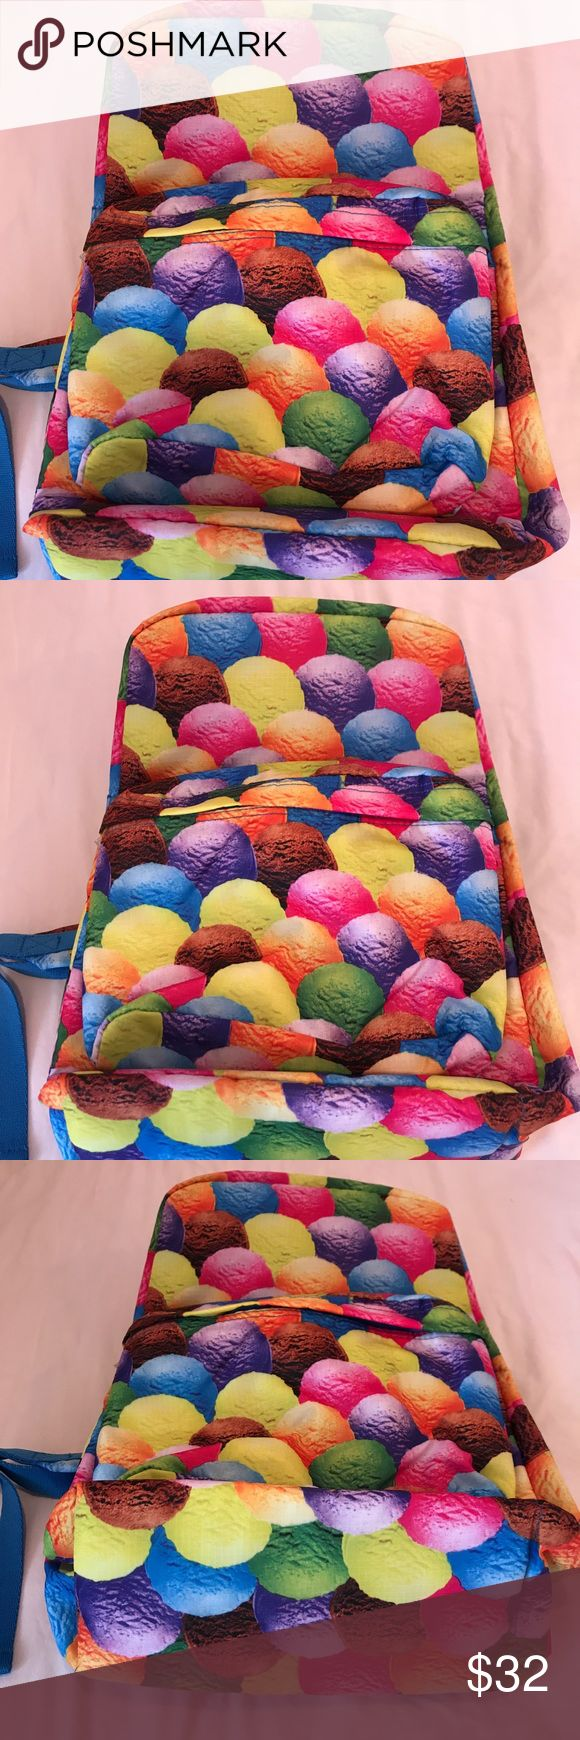 iscream***Ice cream BackPack**$40 Back to School iscream brand backpack. The pattern is also ice cream scoops. Gorgeous backpack that has great compartments. The medium size compartment has an interior white velvet, great for putting electronics or anything breakable. This bag is brand new and perfect for back to school. It has all tags still attached. iscream Accessories Bags